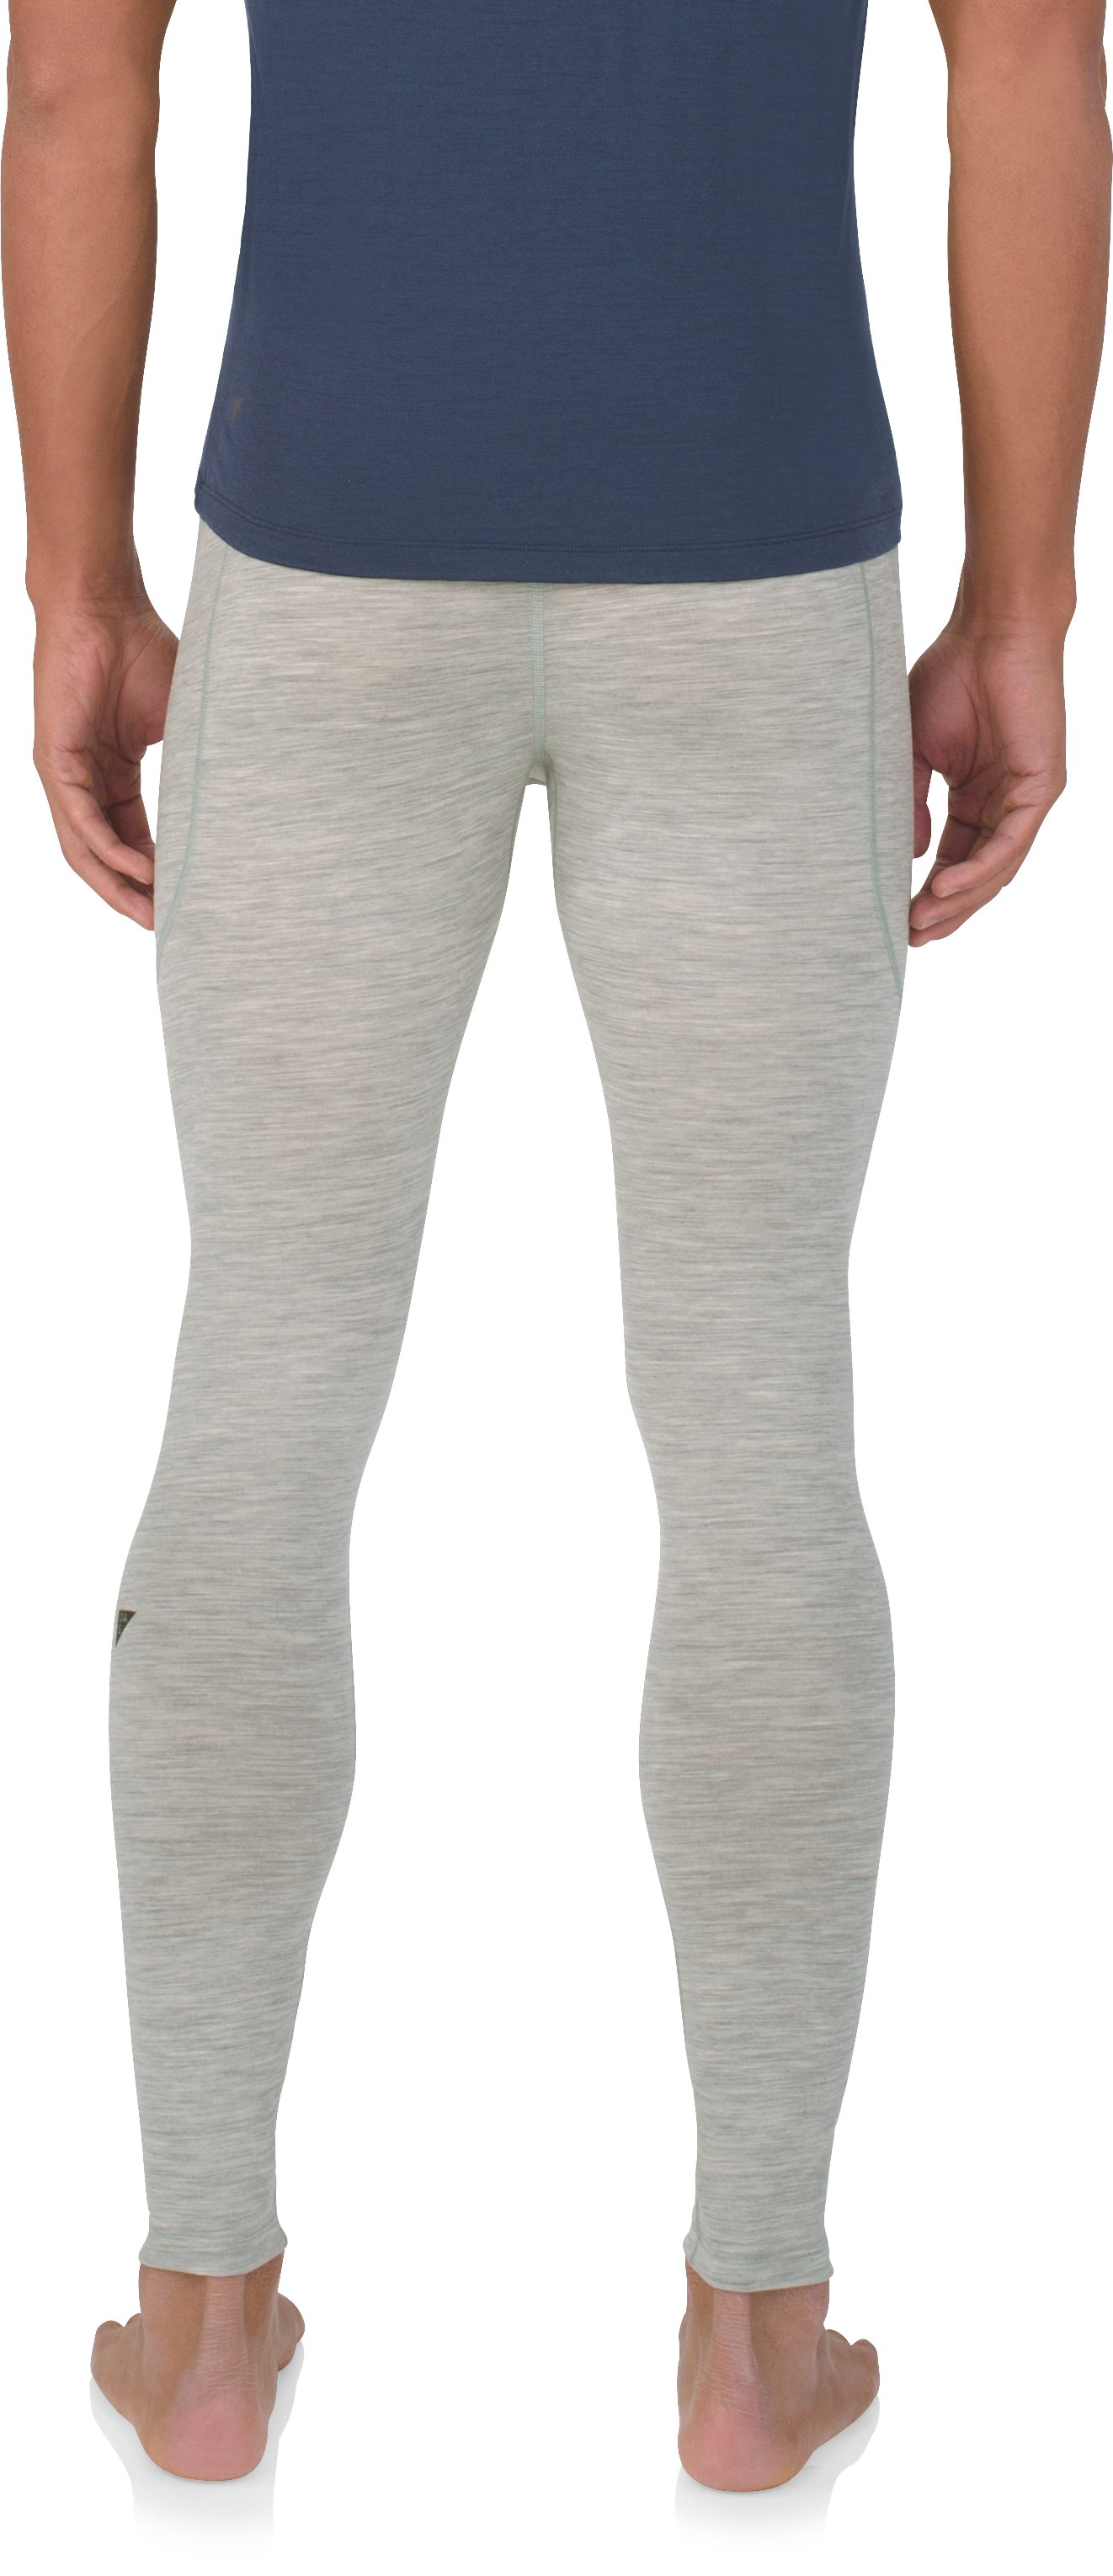 Men's UAS Prime Leggings, LIGHT HEATHER GRAY, undefined